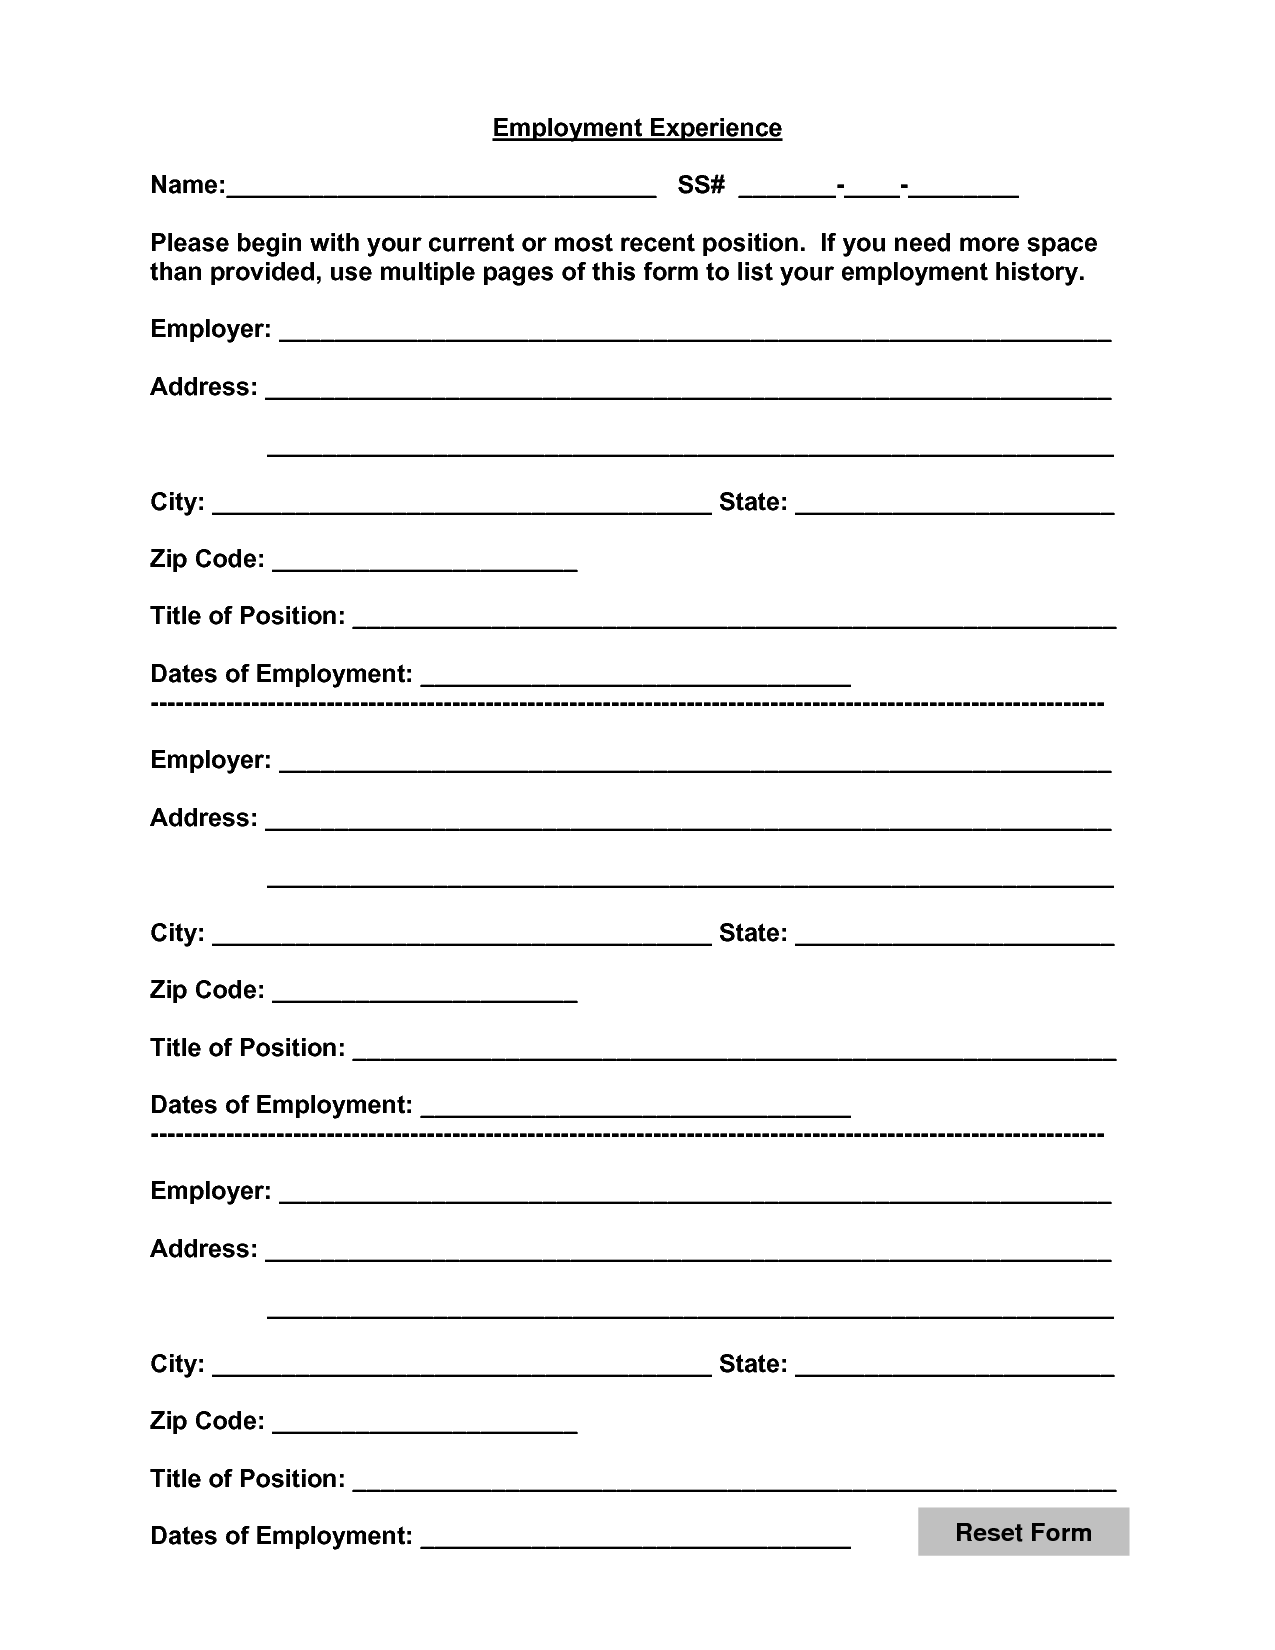 Work Experience Form